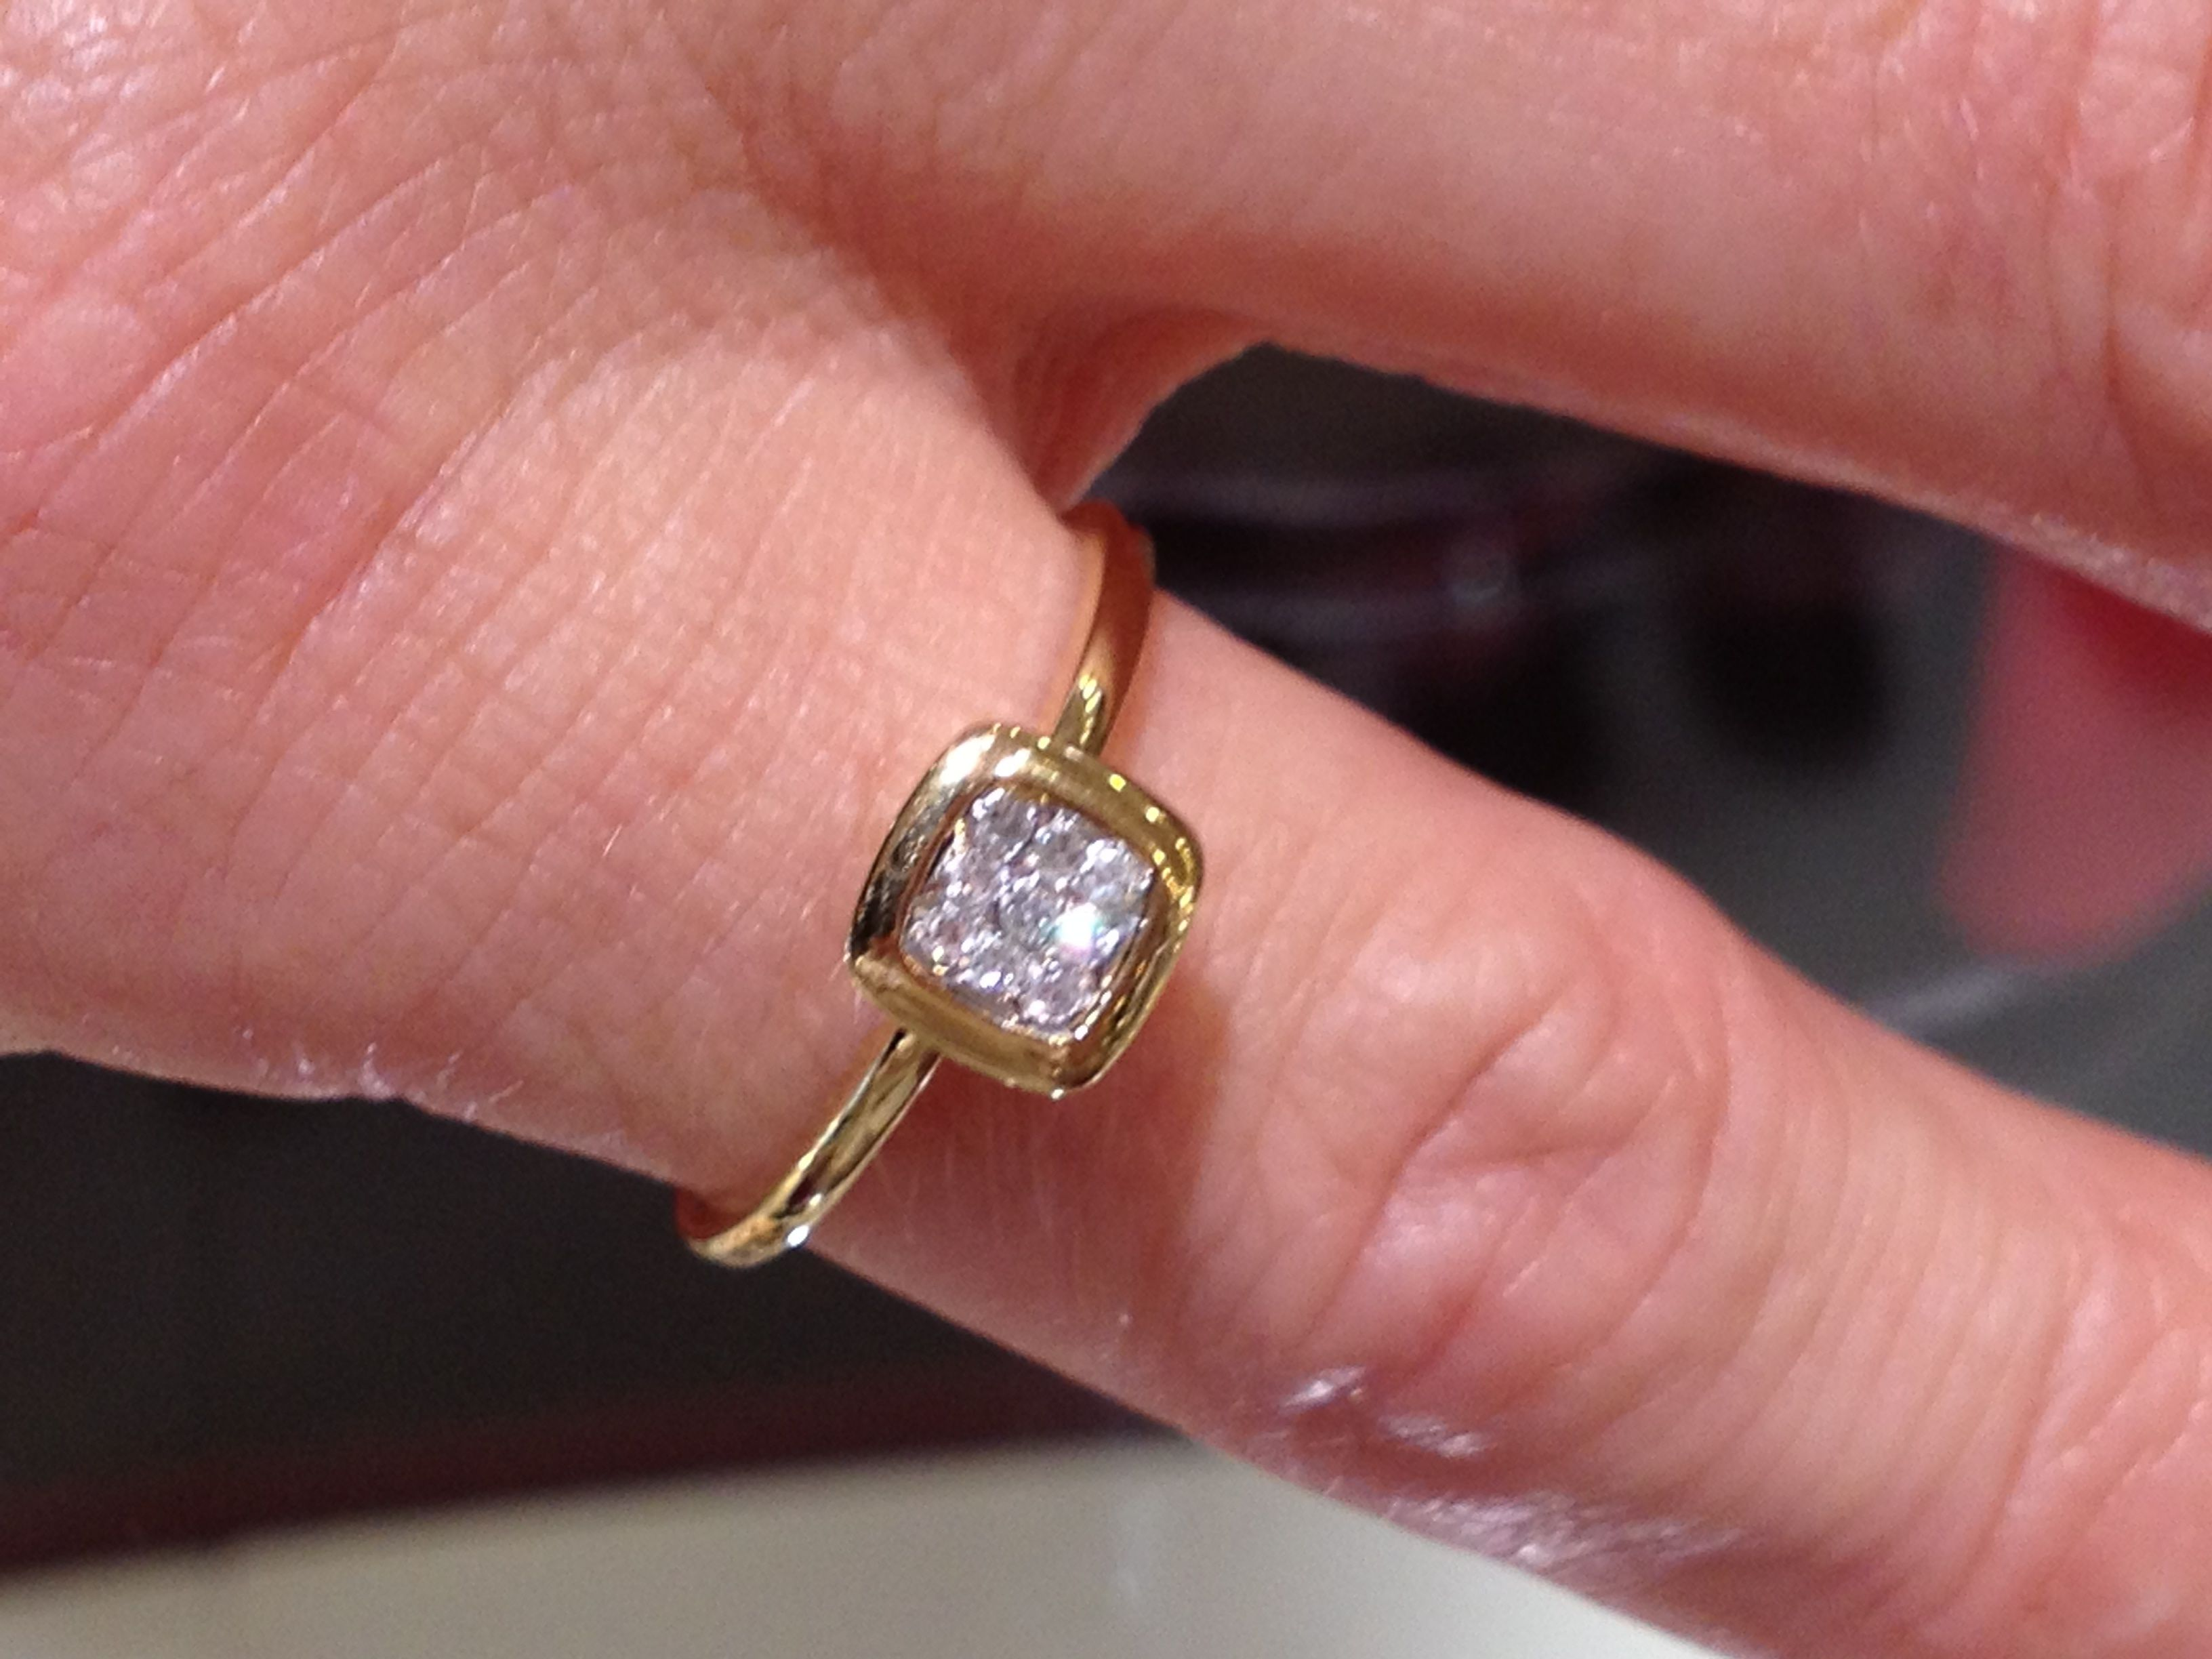 Ceri, Tamaine. Diamond ring, $500.00 | Pic Your Prize | Pinterest